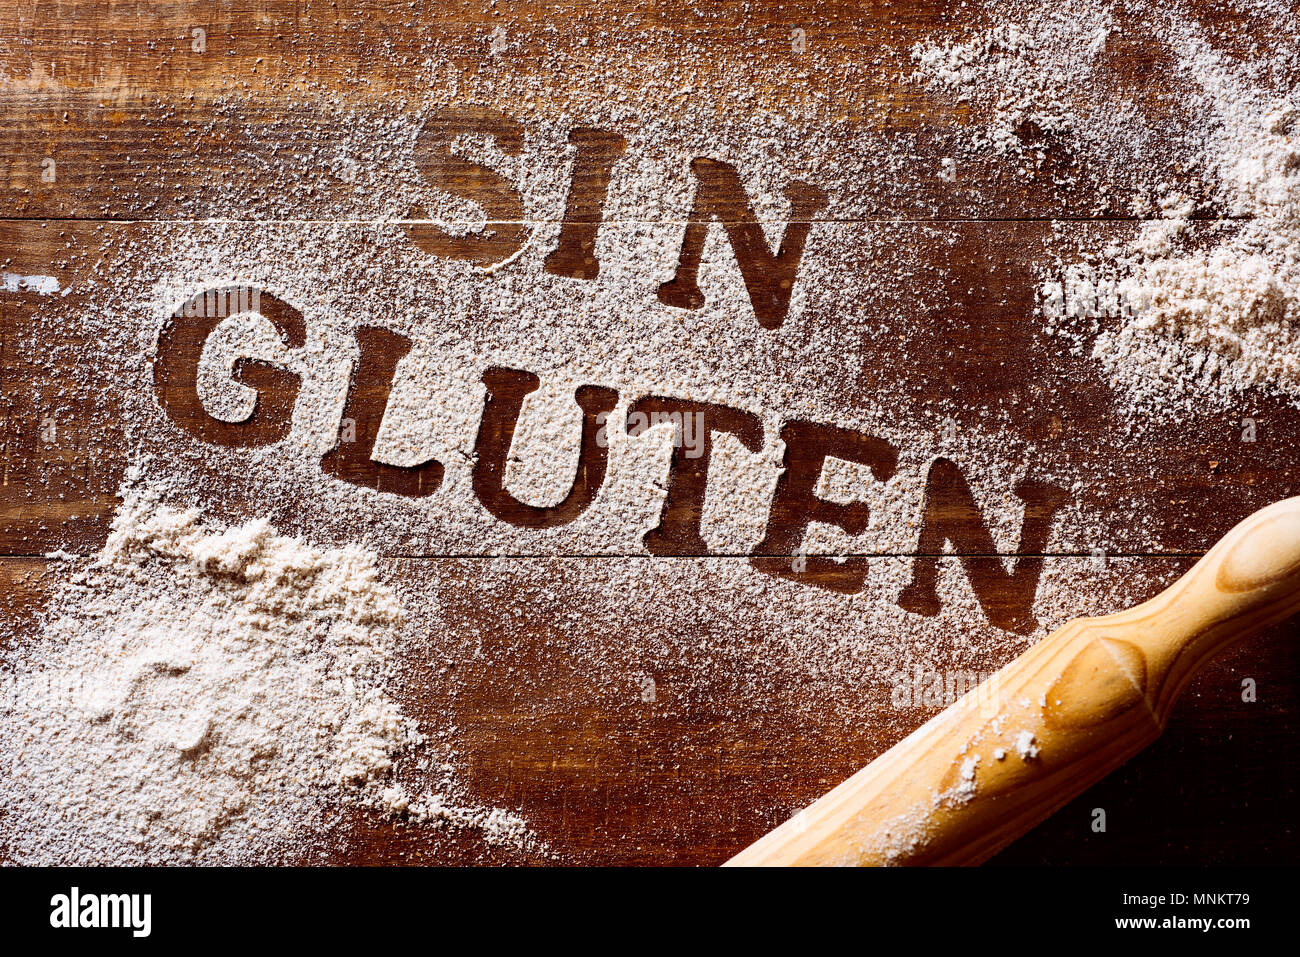 high-angle shot of a wooden table sprinkled with a gluten free flour where you can read the text sin gluten, gluten free written in spanish, next to a - Stock Image